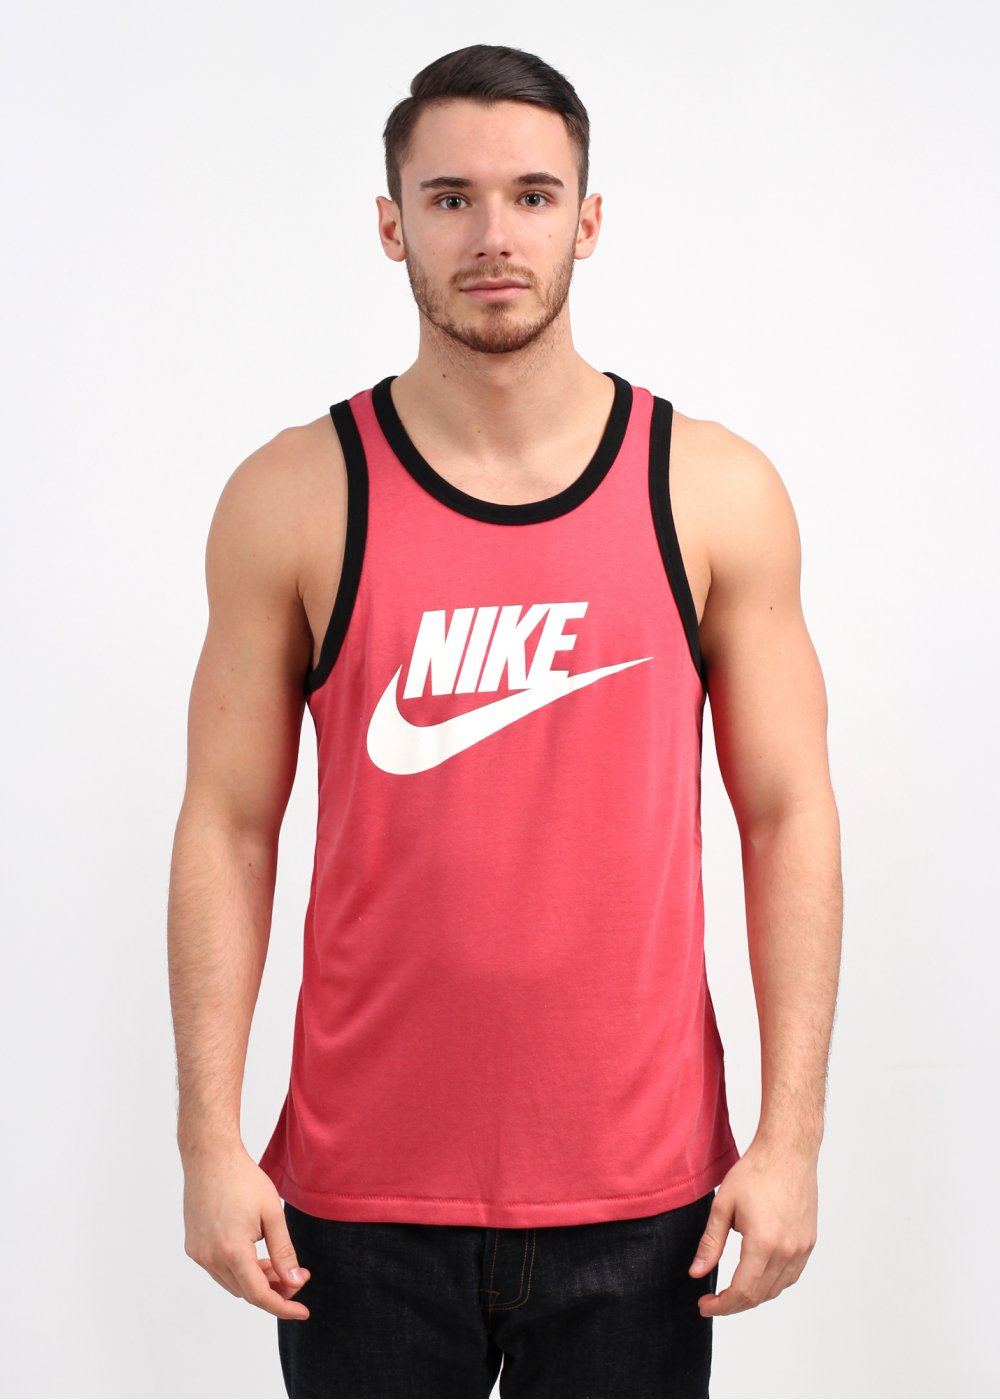 9e9a5298fc3d9 Nike Tank Tops Womens Uk – Rockwall Auction